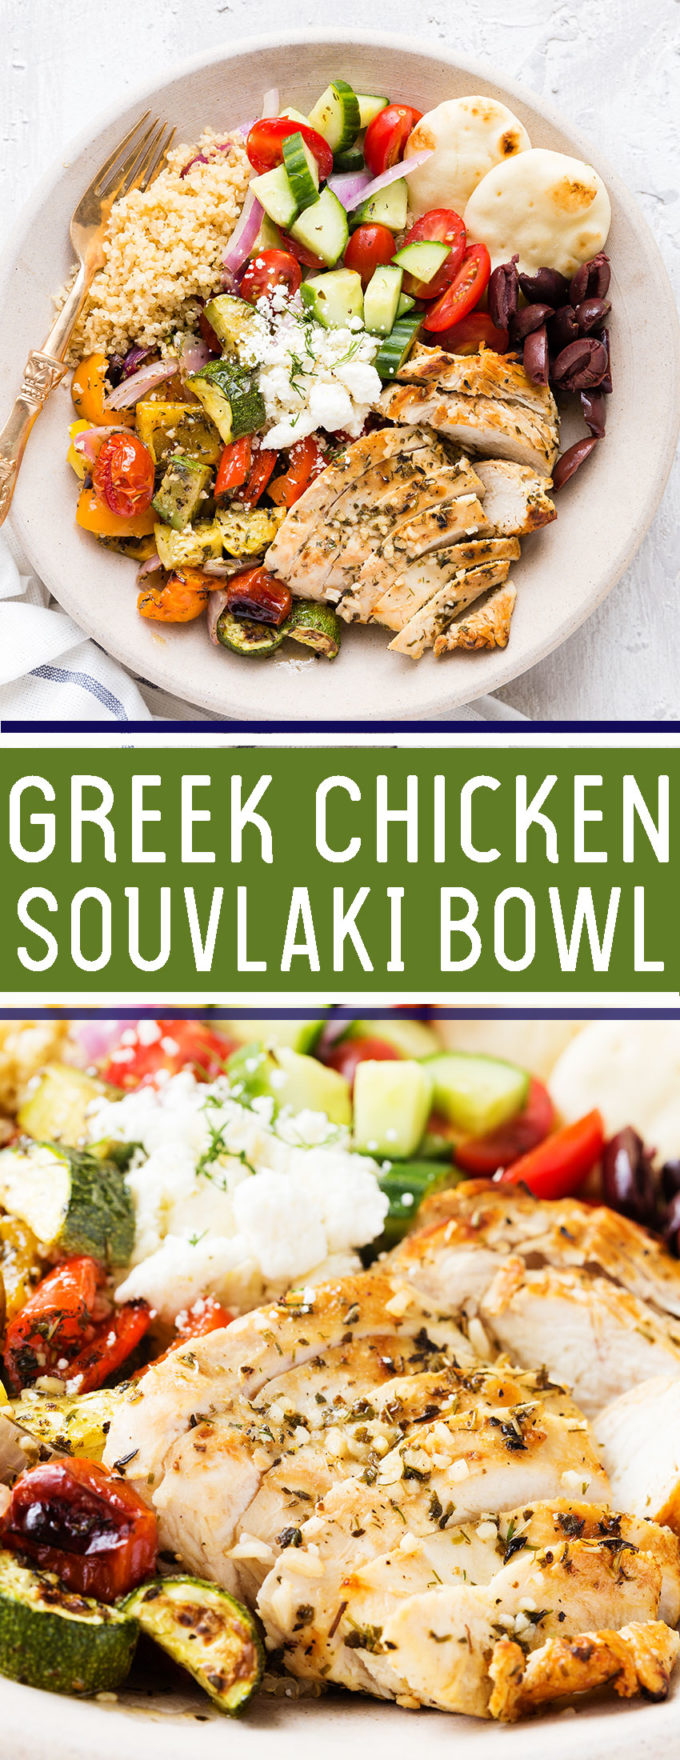 Greek Chicken Souvlaki Bowl: Grilled chicken and roasted vegetables served over quinoa with a fresh cucumber salad, Kalmata olives, and feta, garnished with fresh dill